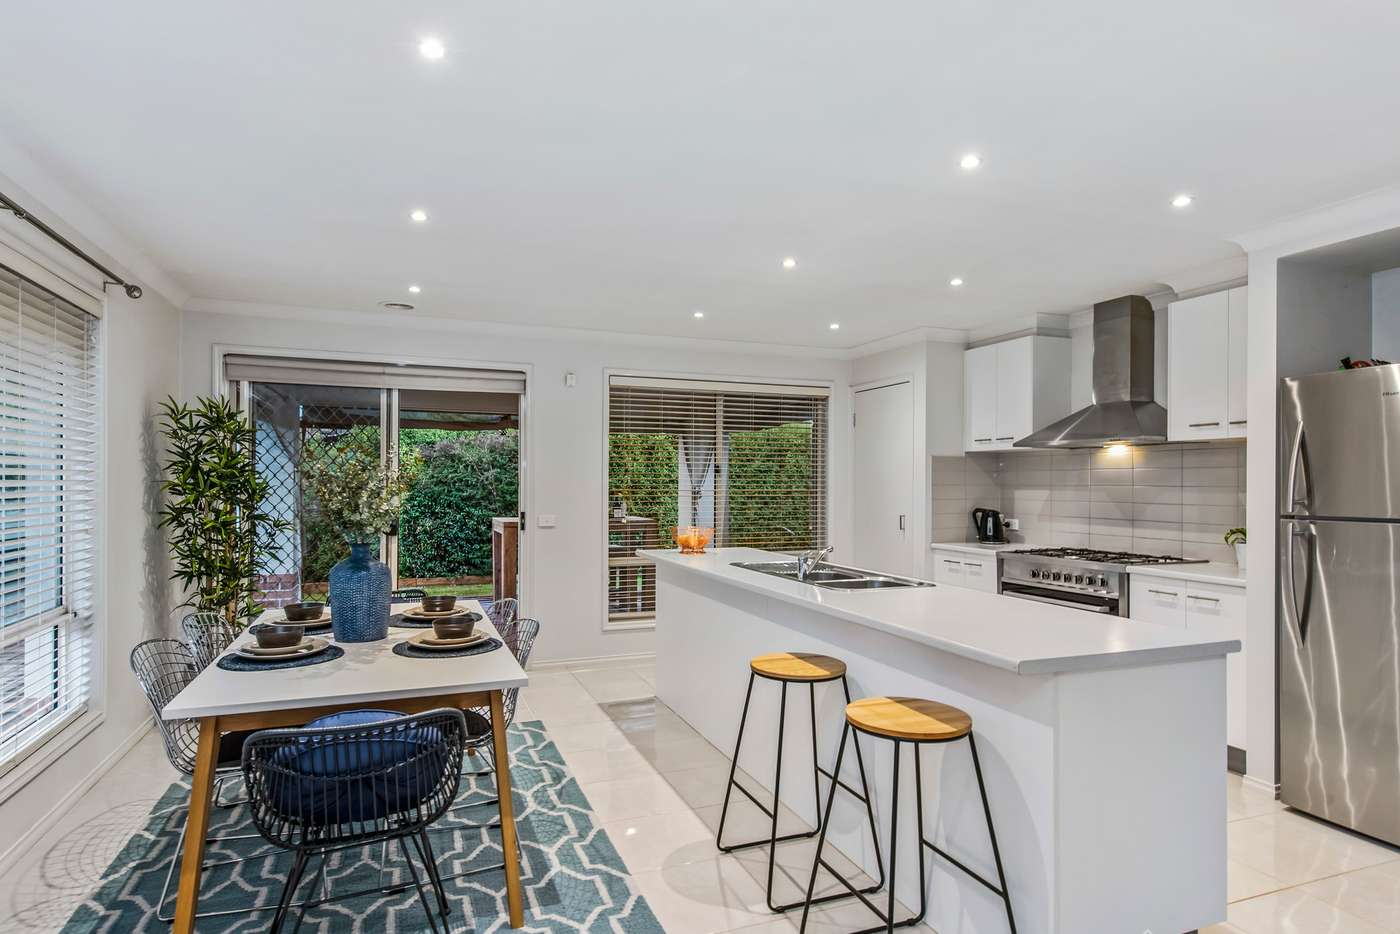 Fifth view of Homely house listing, 8 Eccles Way, Botanic Ridge VIC 3977